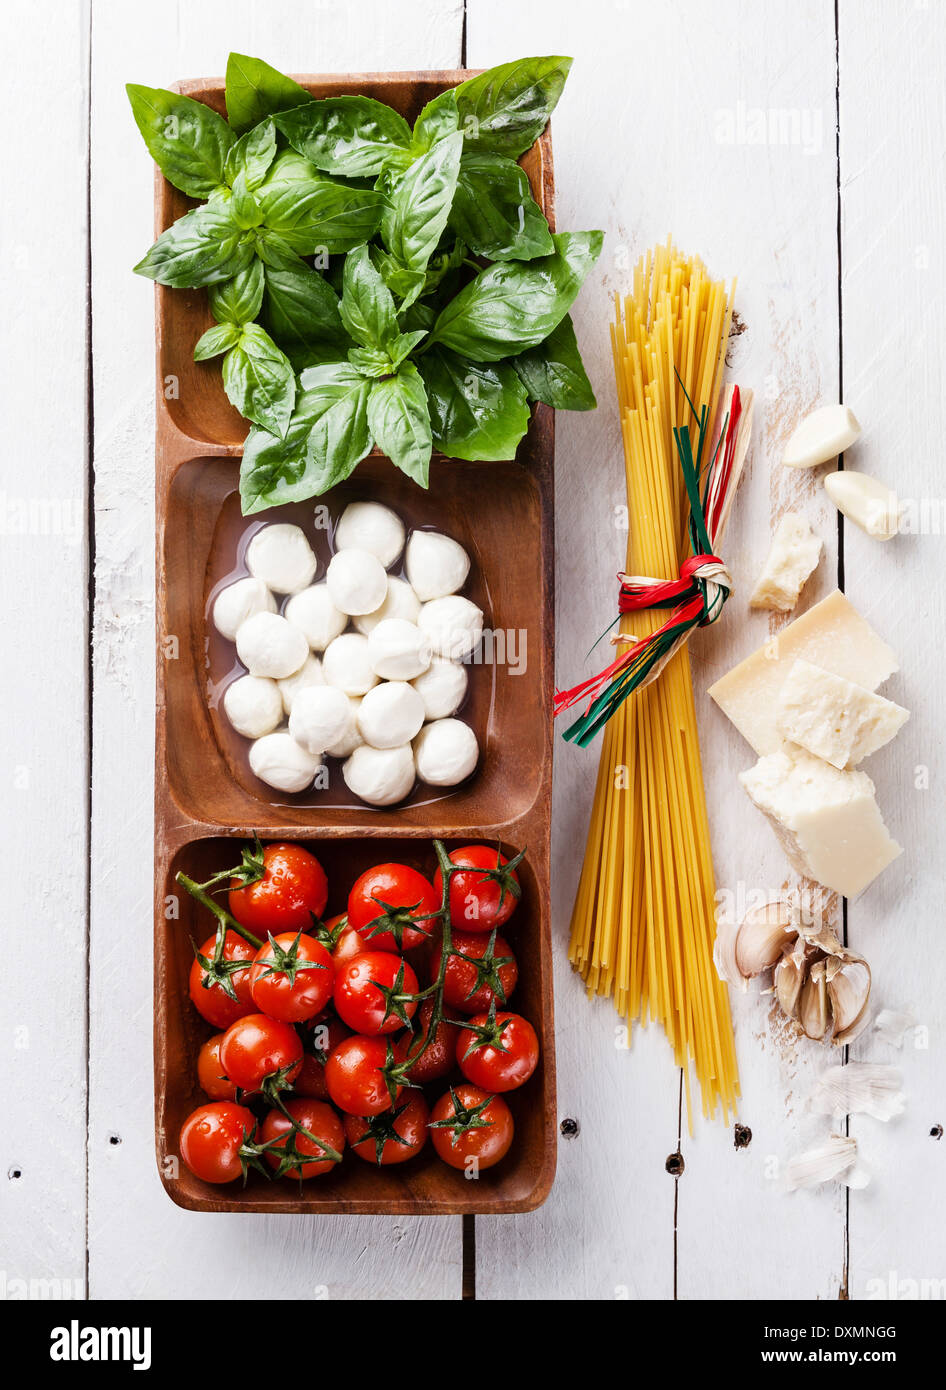 Italian flag colors with Green basil, white mozzarella, red tomatoes, parmesan and spaghetti - Stock Image